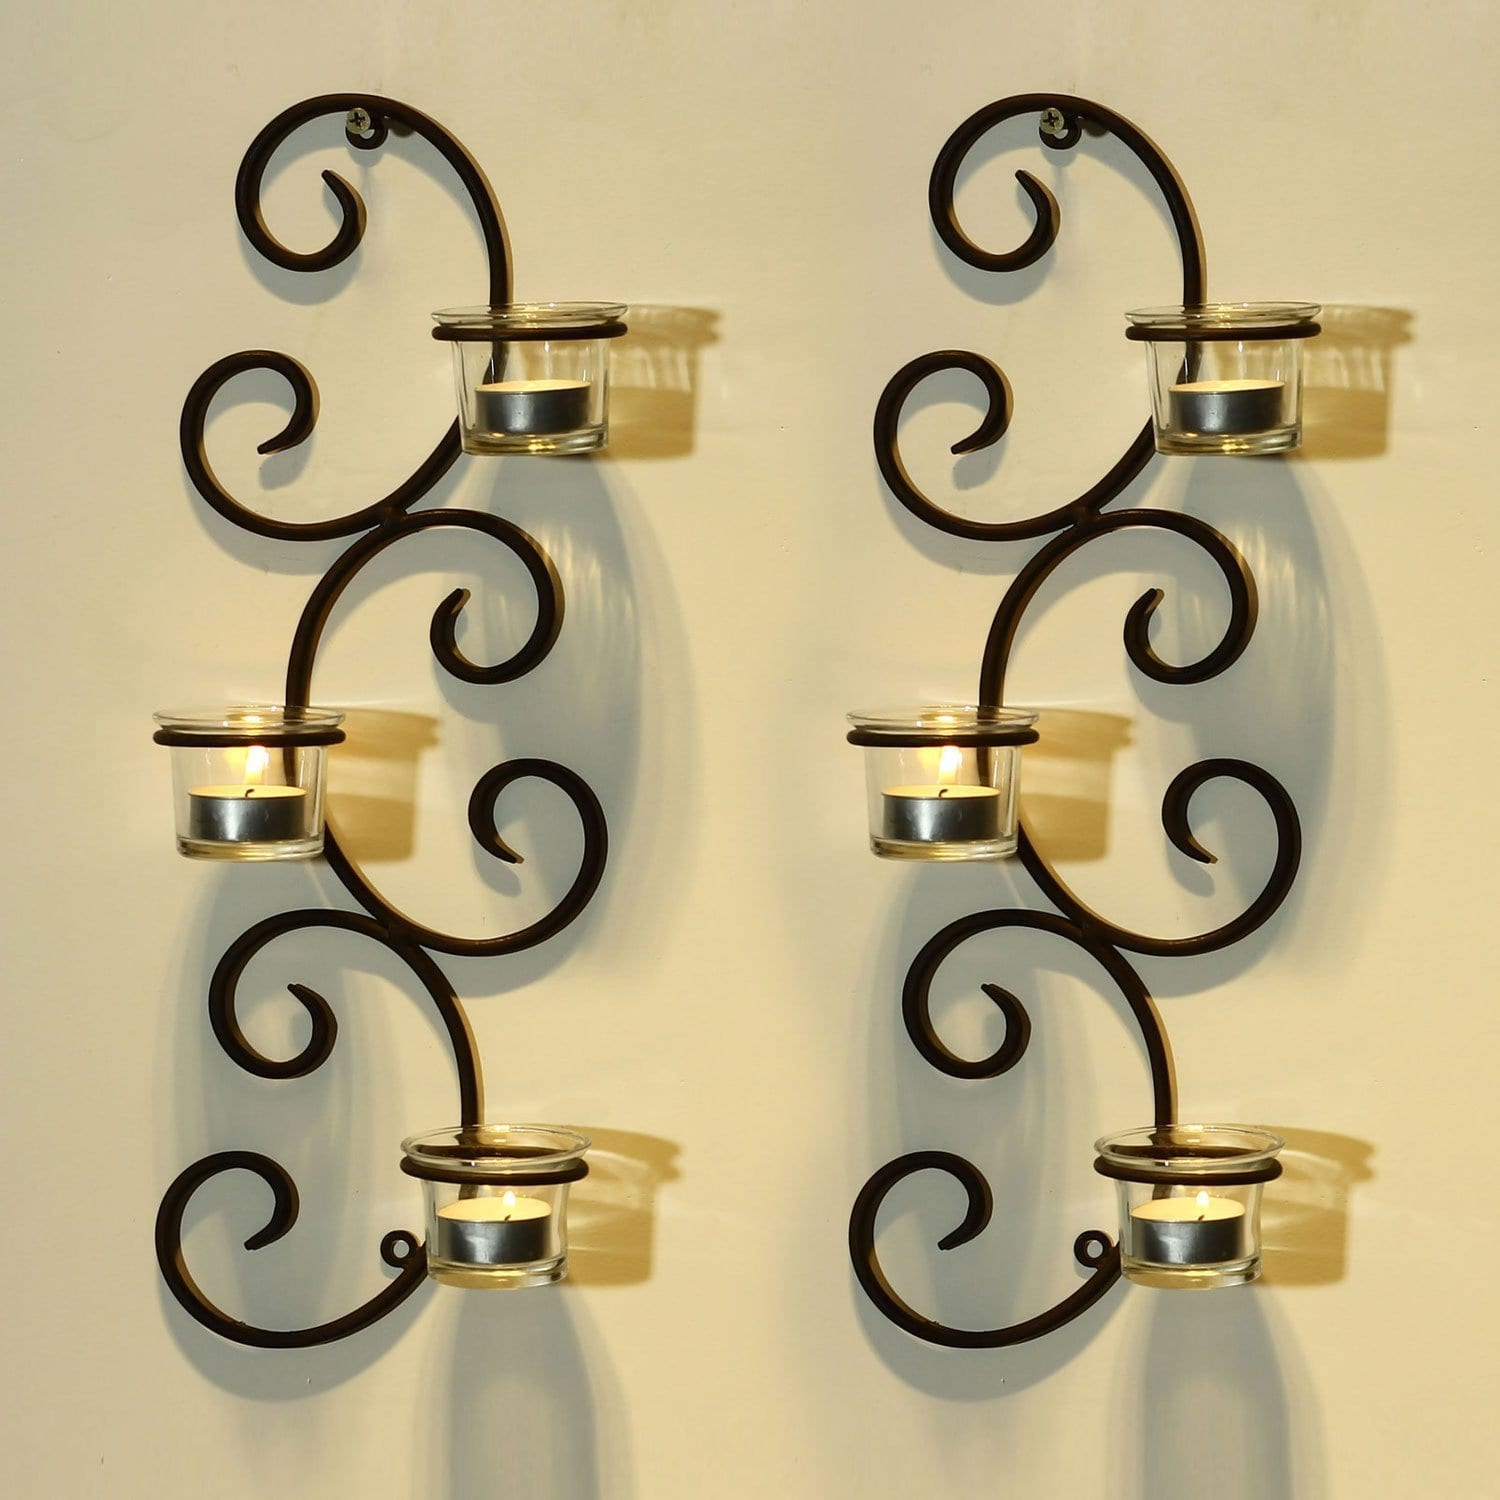 Adeco Brown Iron Vertical Wall Hanging Accents Candle Holder Sconce (Set of 2) by Overstock